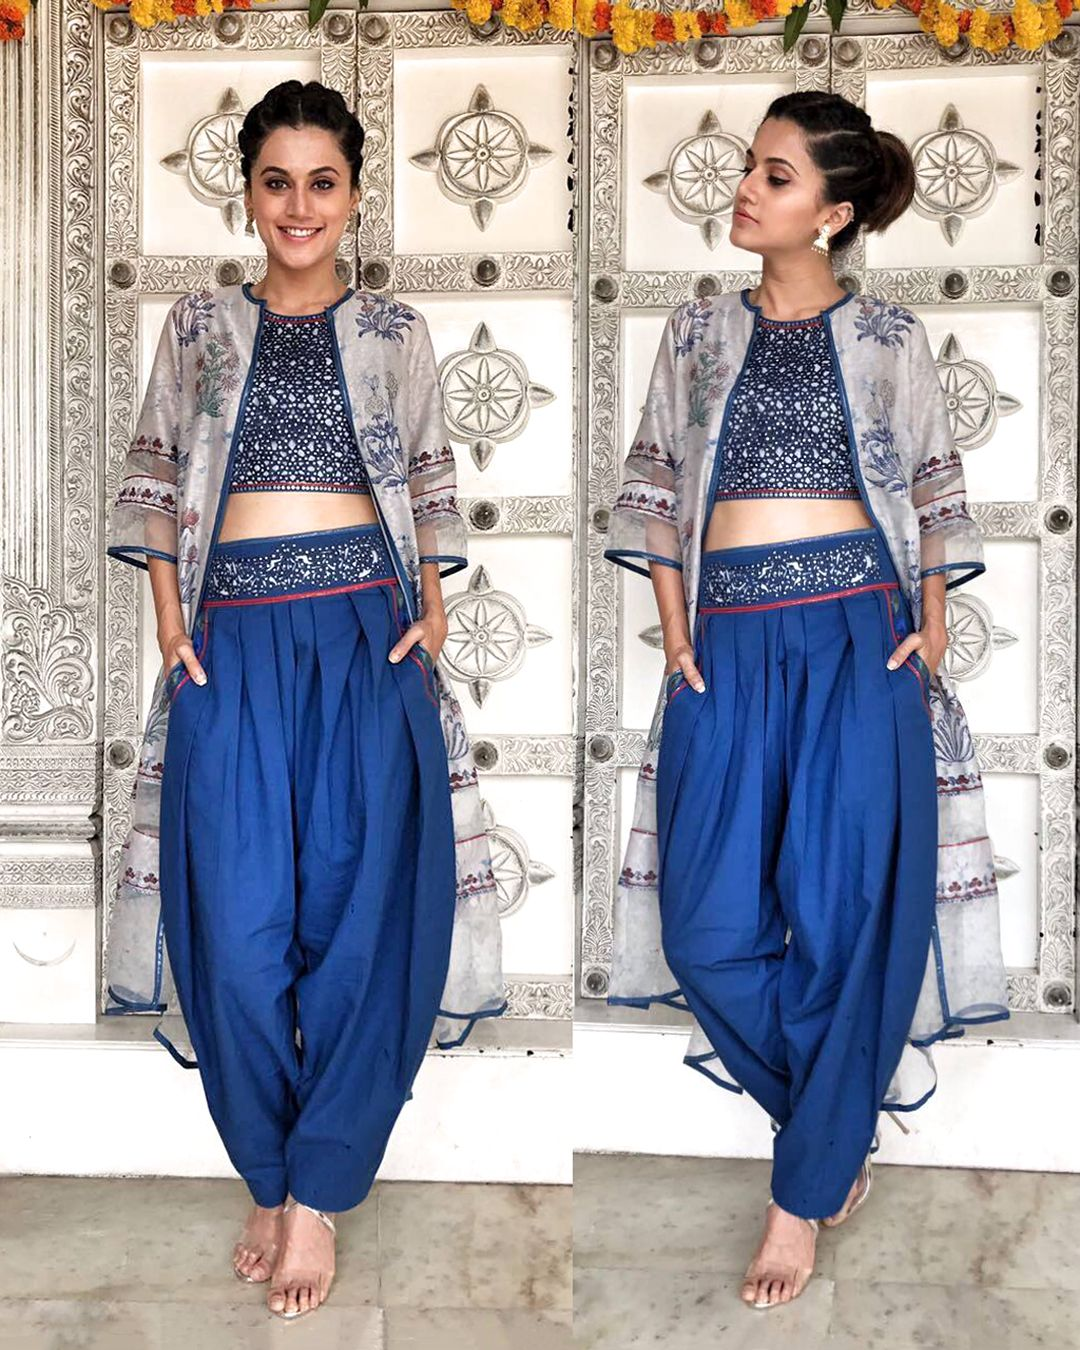 Taapsee Pannu Salwar and crop top outfit | Ethnic Fashion ...